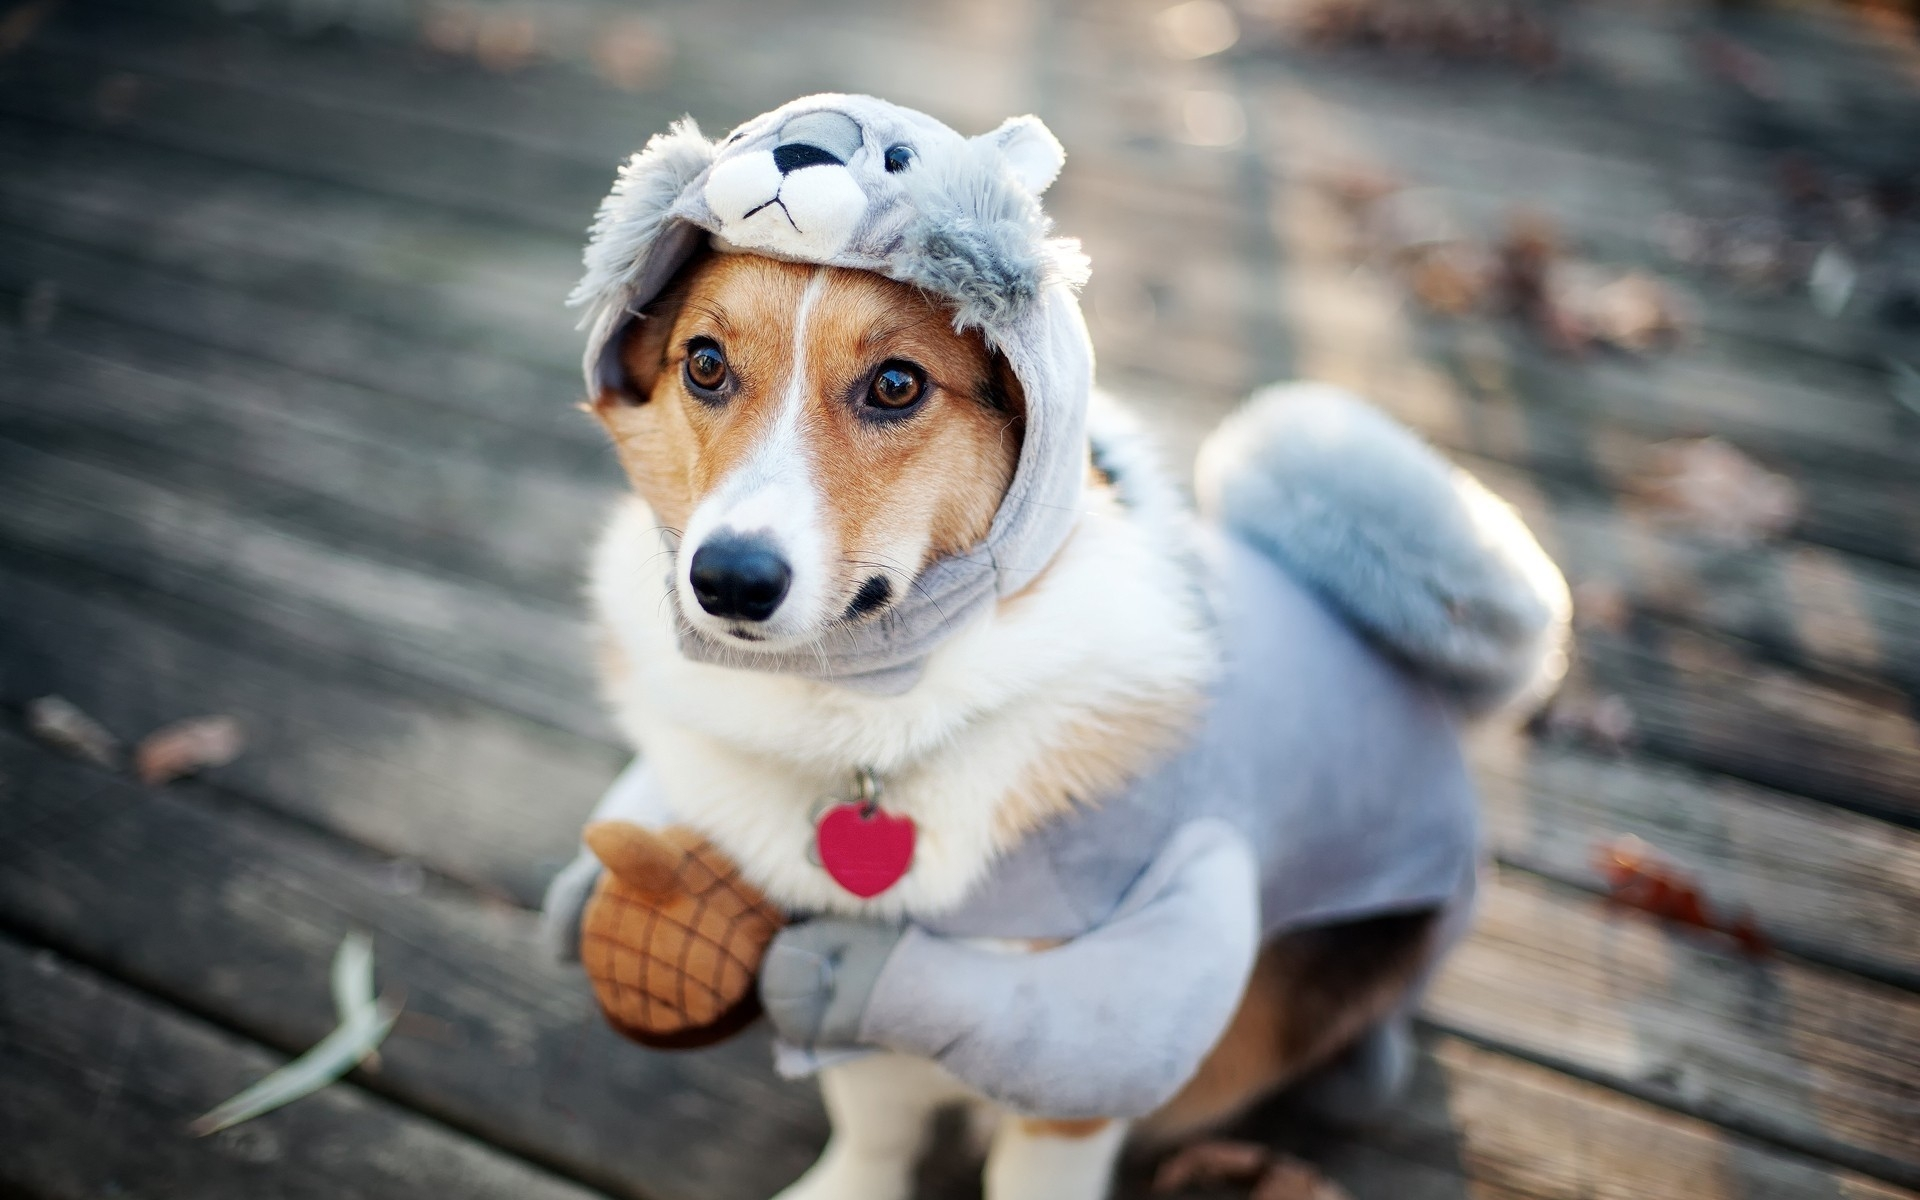 Funny Dogs Image